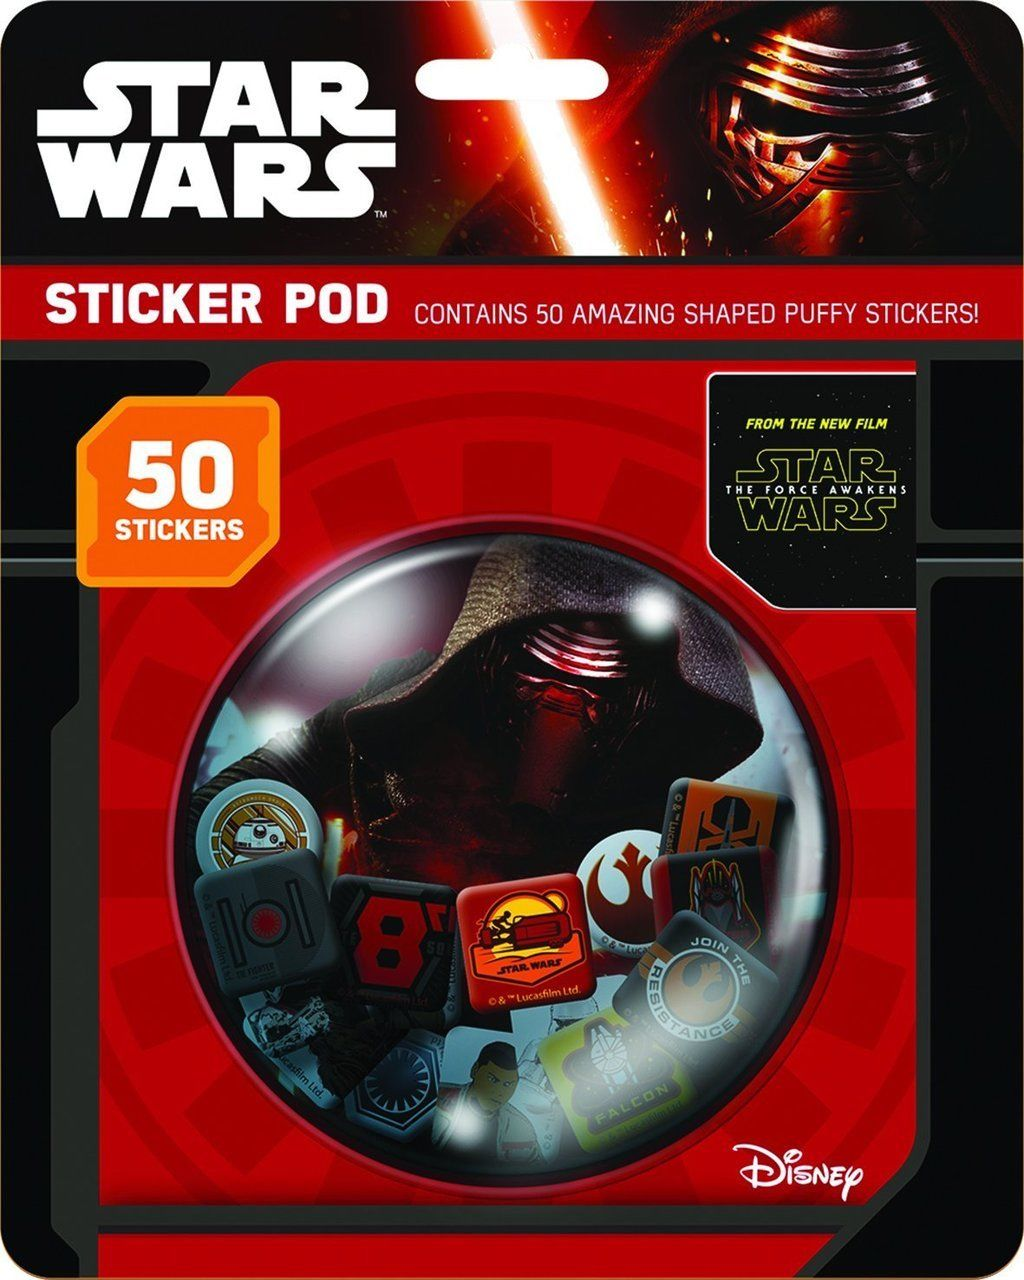 Star Wars VII Sticker Pod with 50 Shaped Puffy Stickers